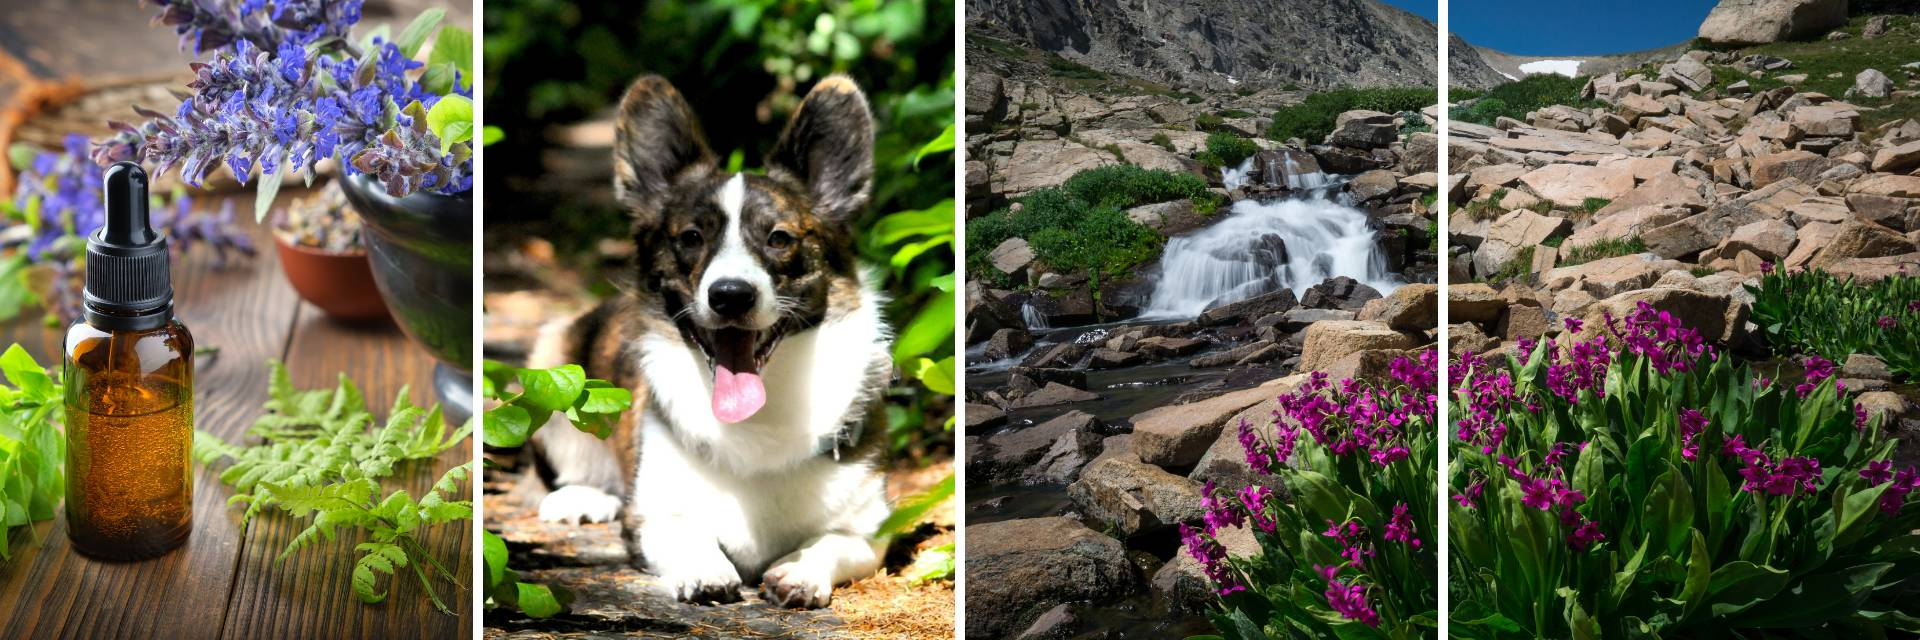 Aldaron flower essence guides for dogs